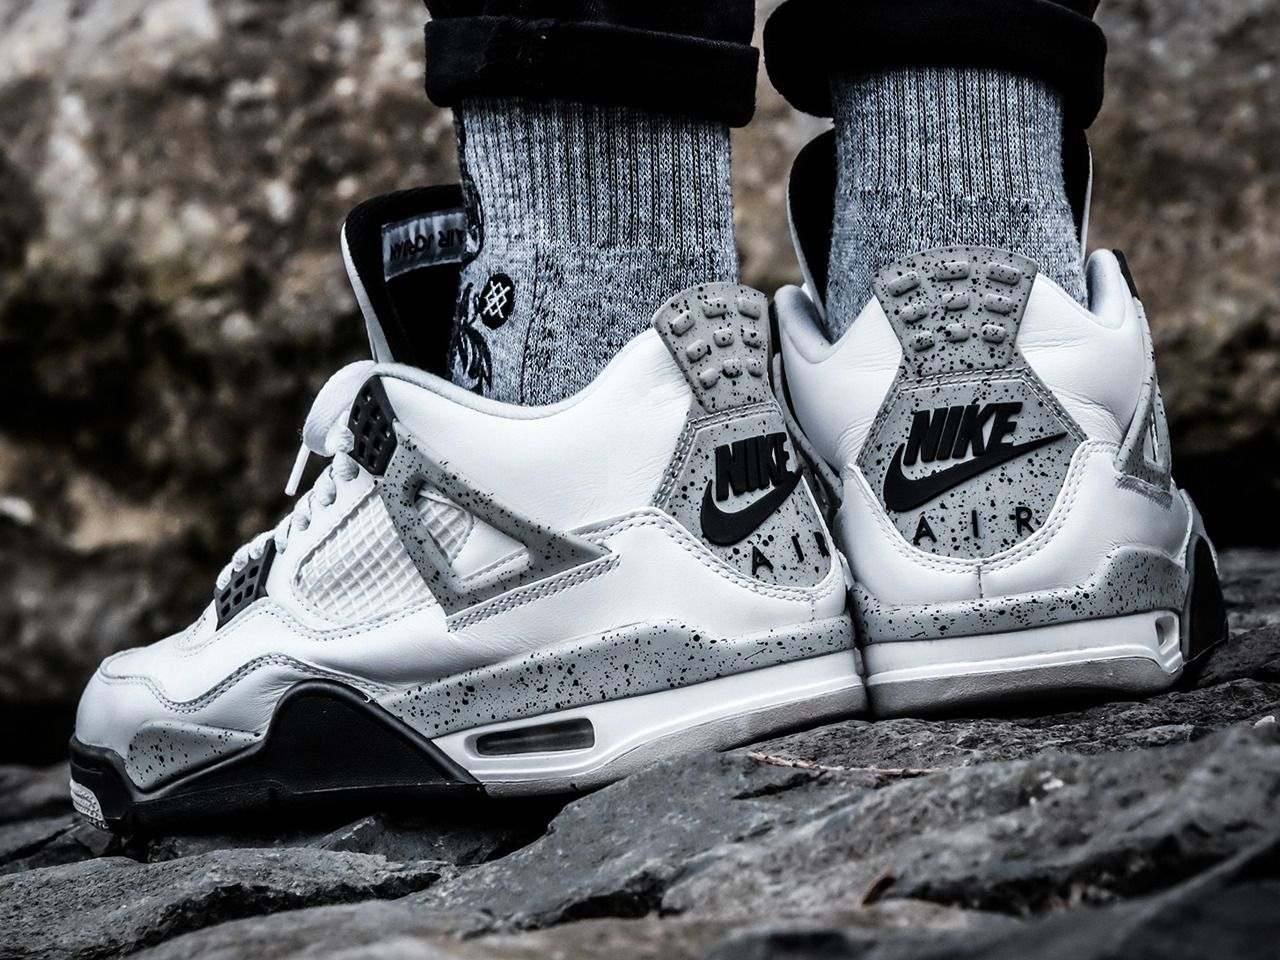 brand new 39ed3 efa64 Nike Air Jordan 4 - White Cement - 2016 (by ginogold) Shoe trees are no new  concept but Sole Trees brings protection to the shape and integrity of  sneakers ...